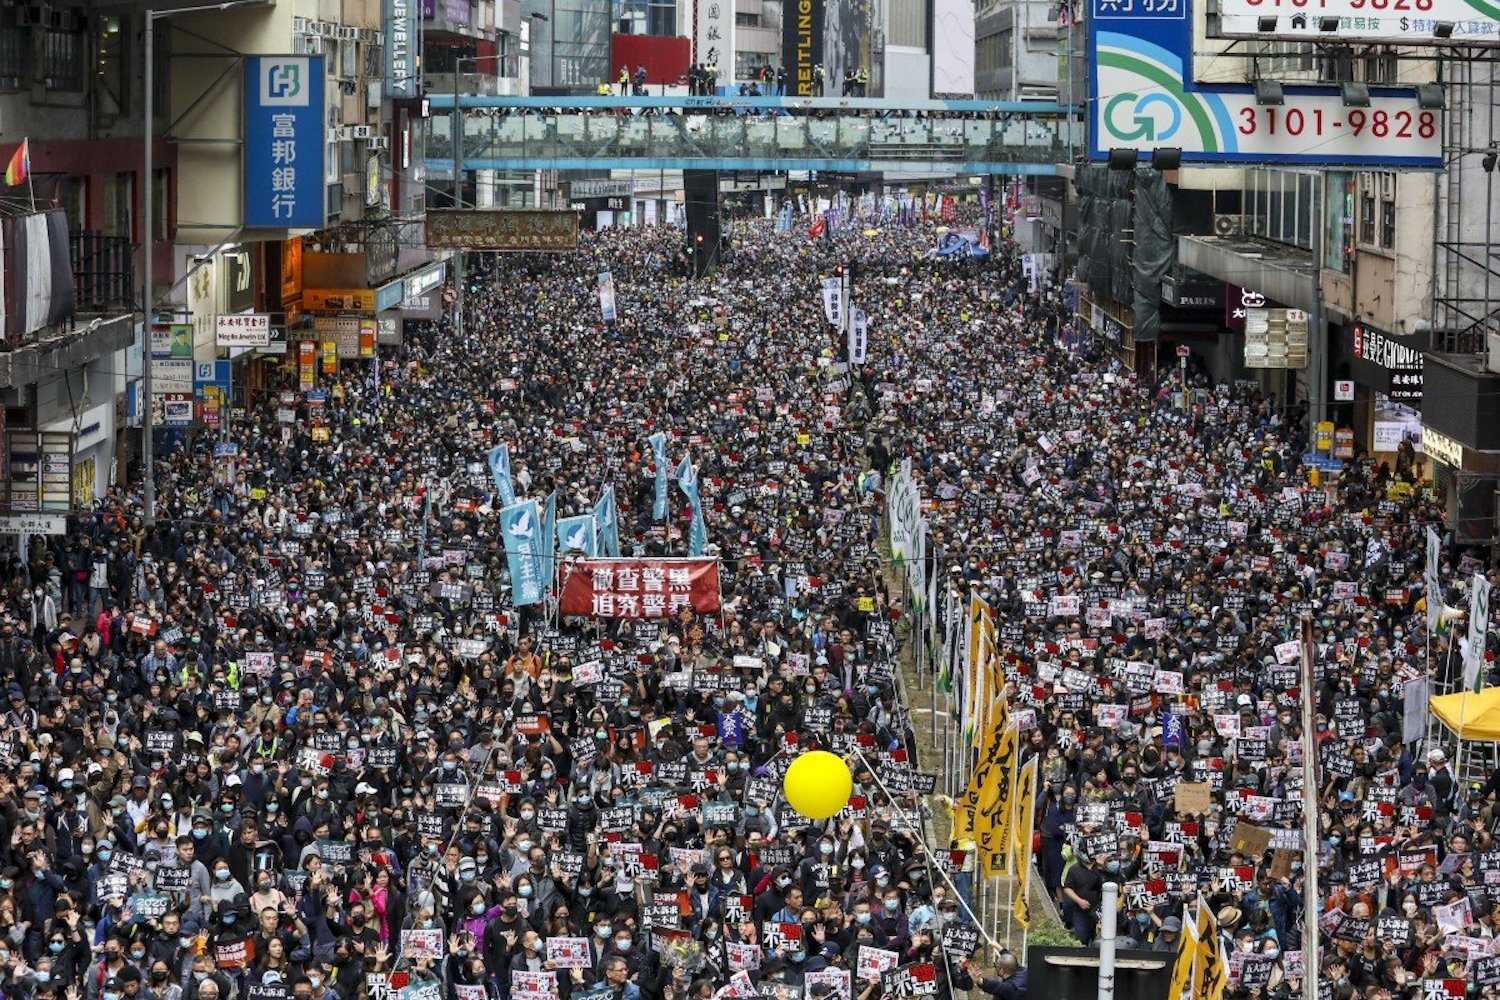 Anti-government protesters rally in Hong Kong on New Year's Day 2020 in a march organised by the Civil Human Rights Front, which is preparing to disband. (Photo: Nora Tam/South China Morning Post)